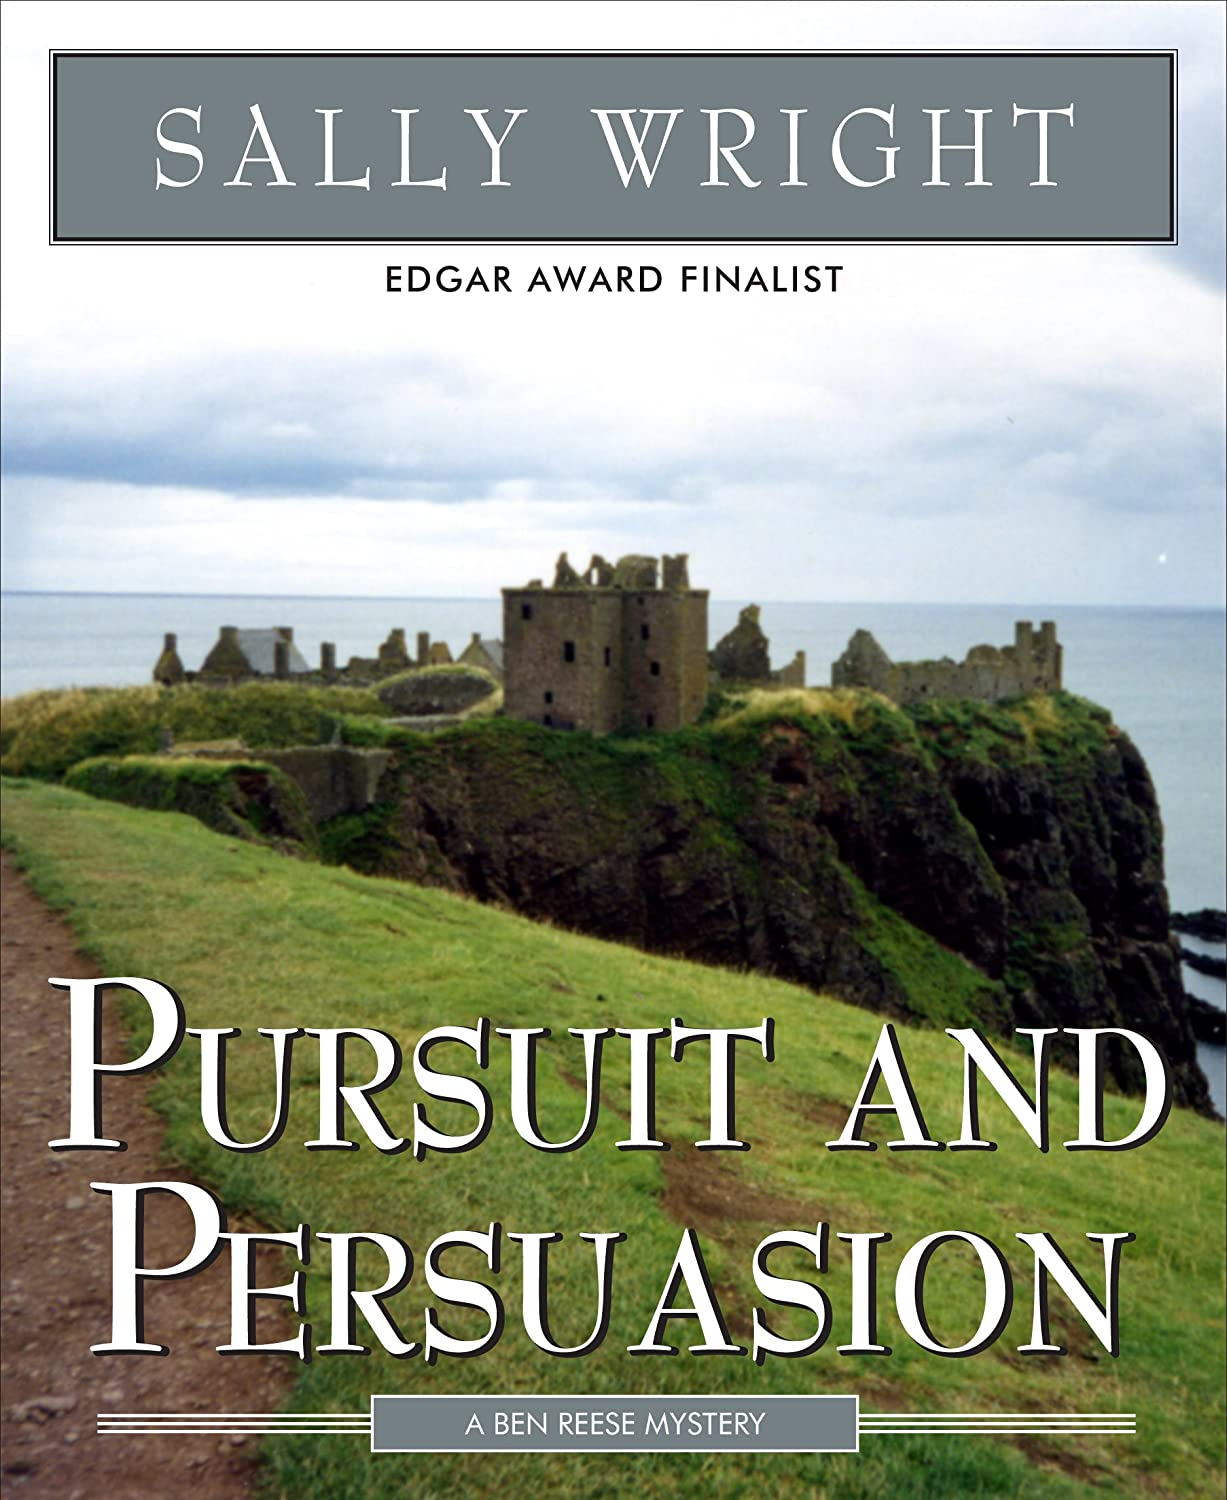 https://www.goodreads.com/book/show/10281944-pursuit-and-persuasion